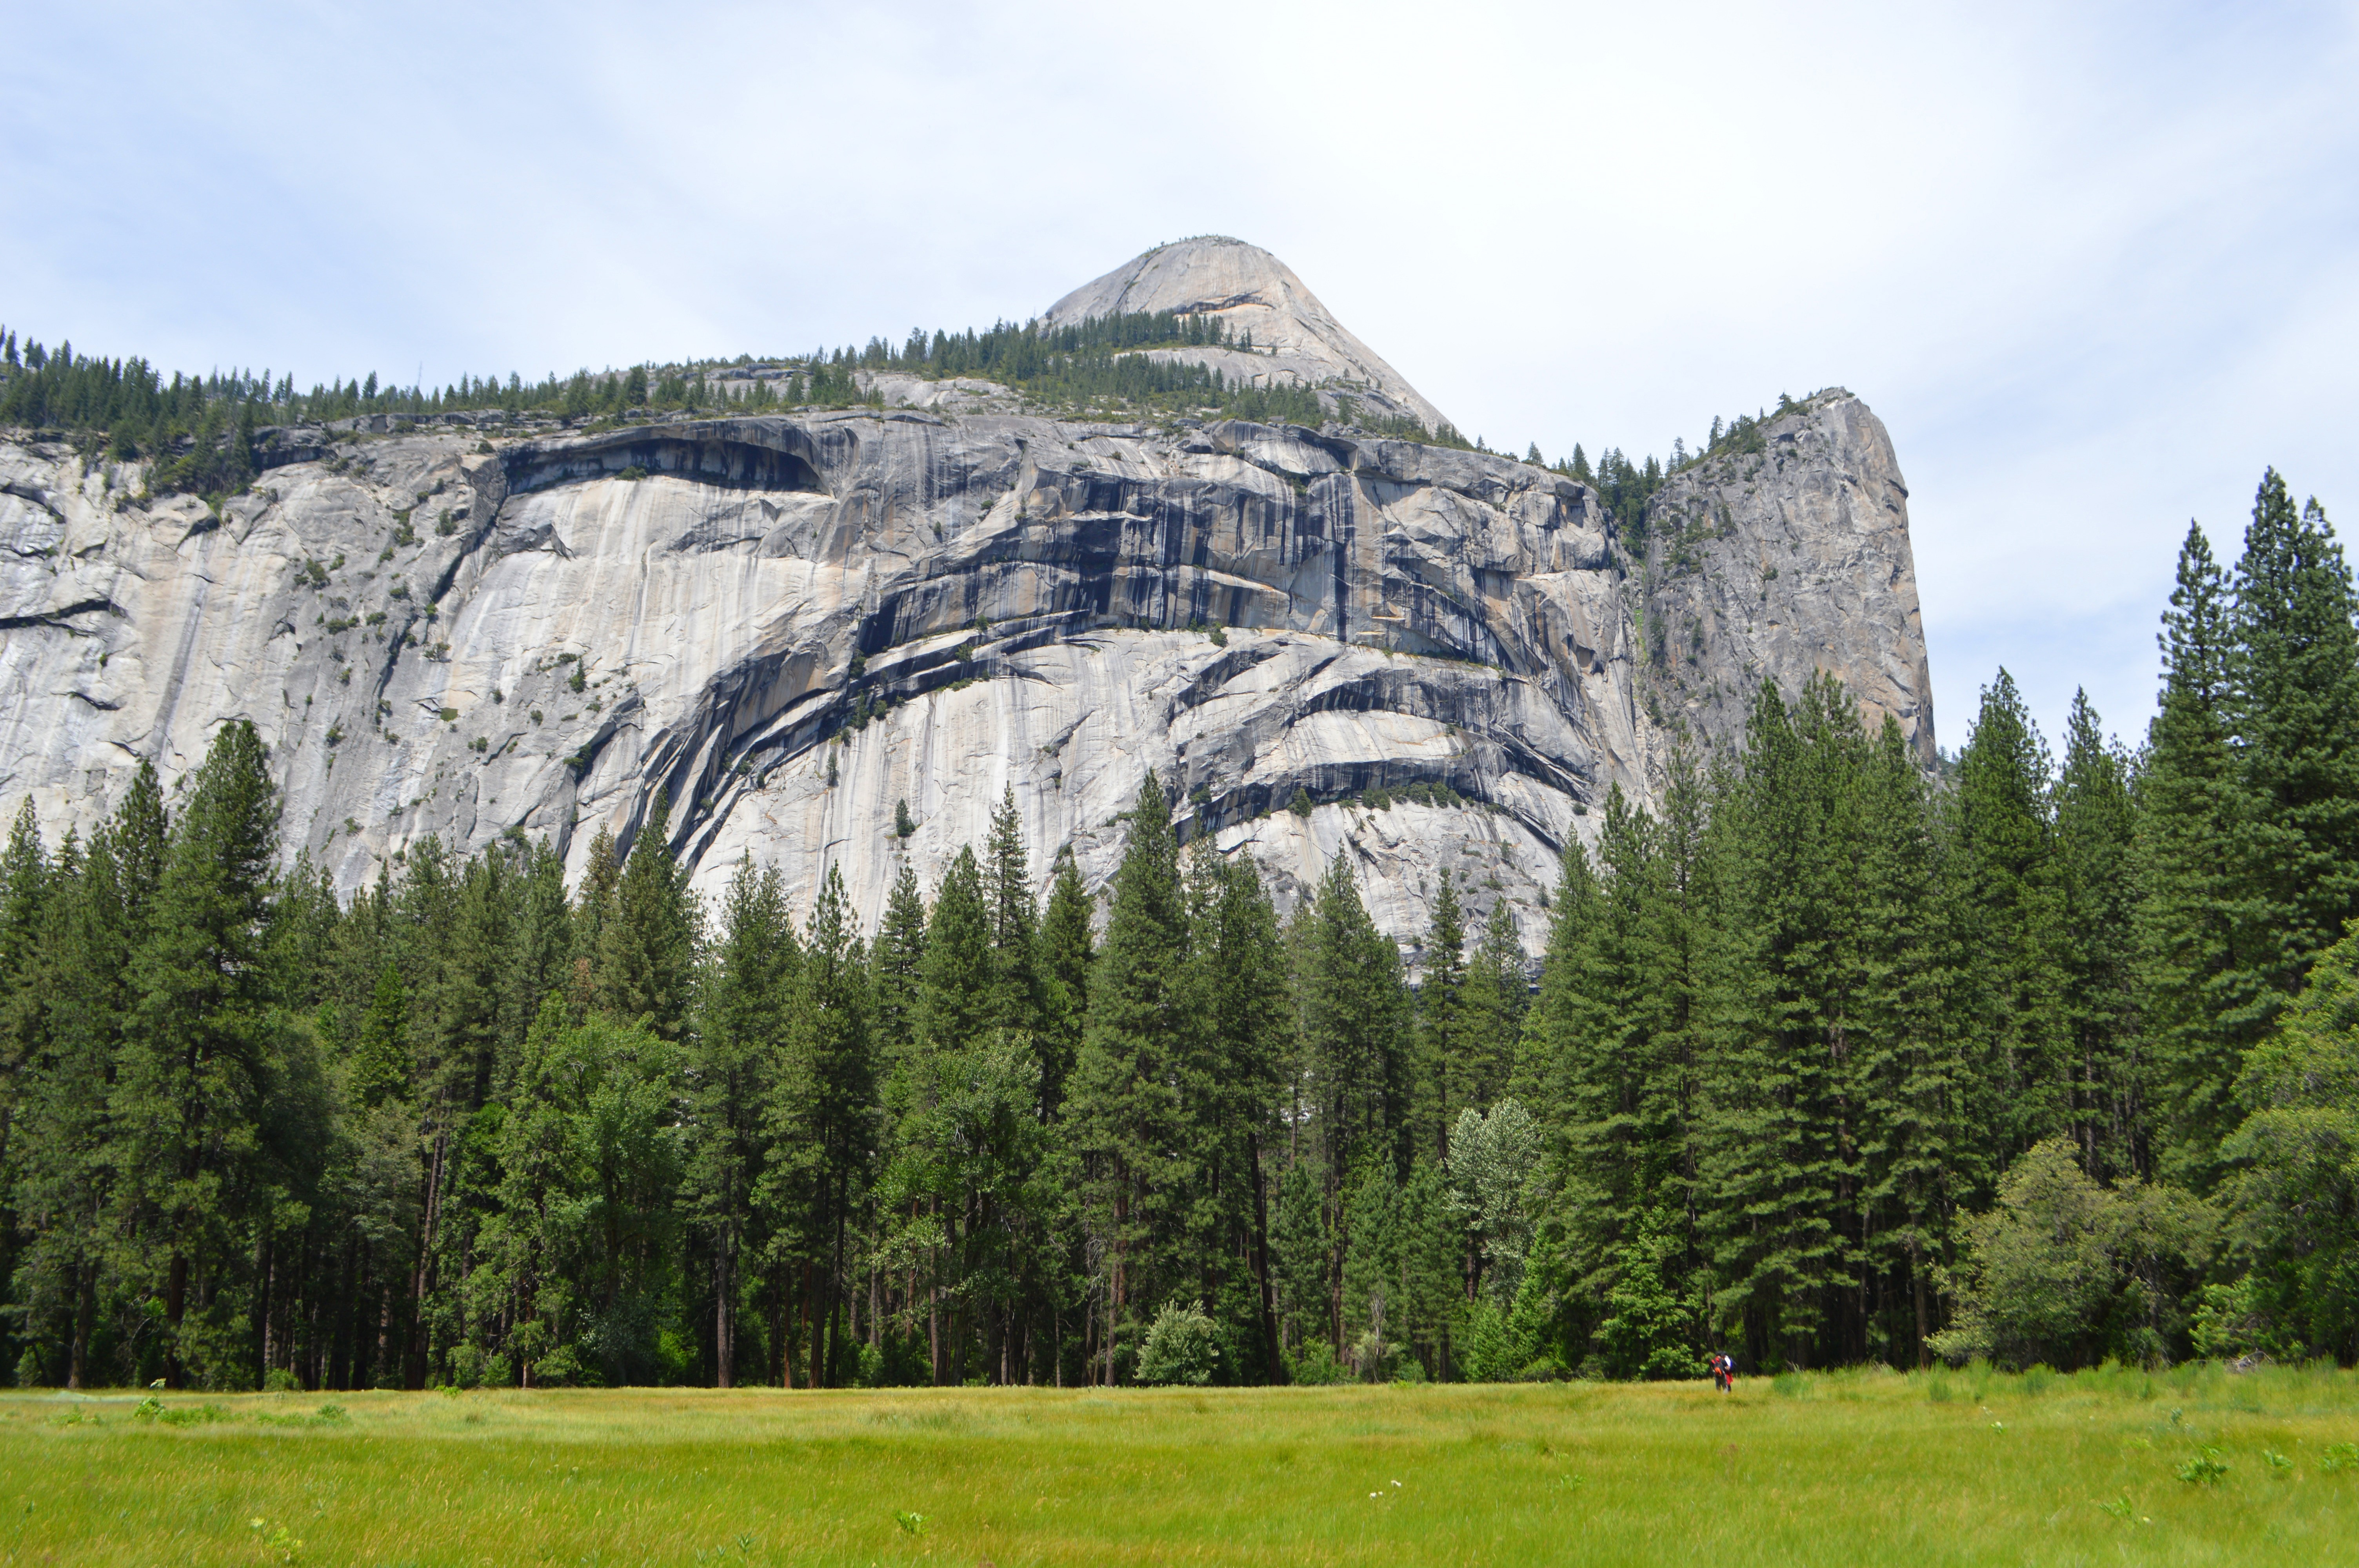 singles in yosemite national park Yosemite national park one day tour  single travelers  park rangers introduce some of yosemite's most famous sightseeing points in yosemite valley .